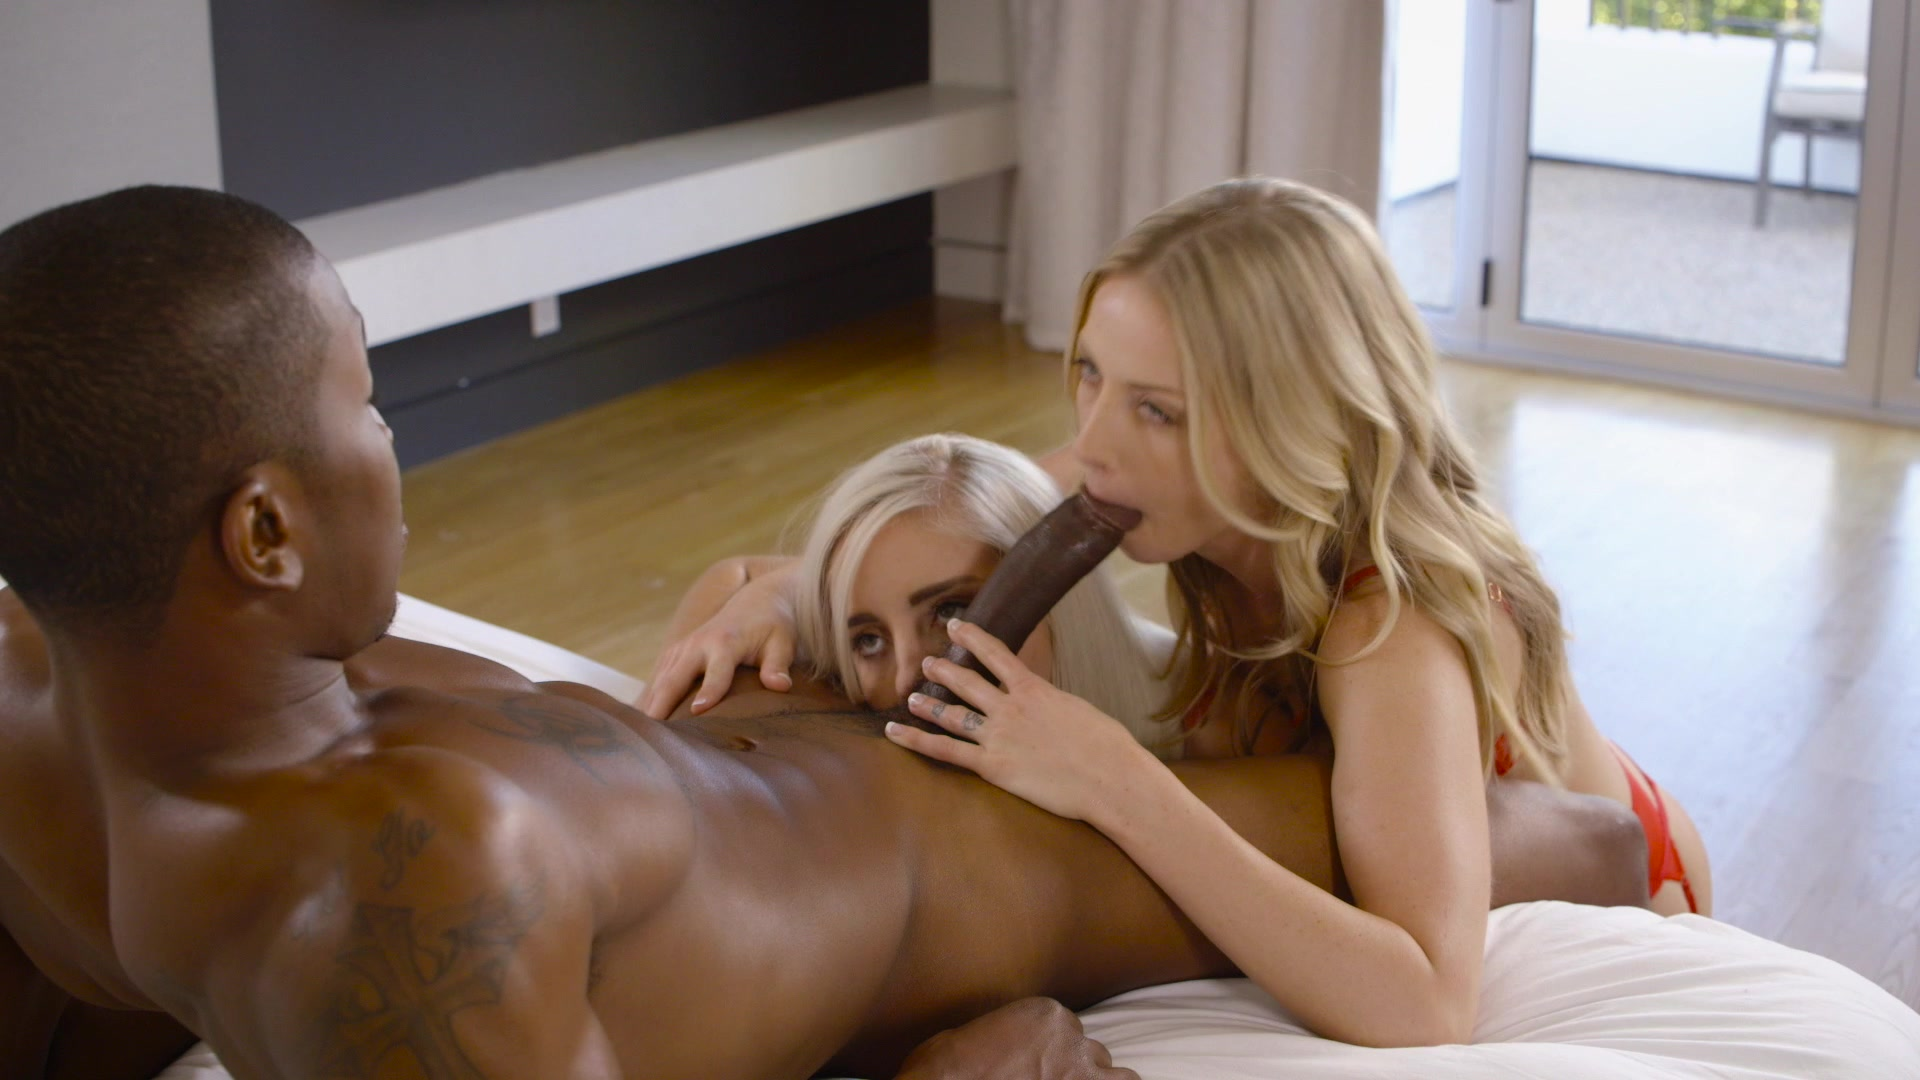 sharing-her-first-interracial-experience-clips-naruto-porn-fingering